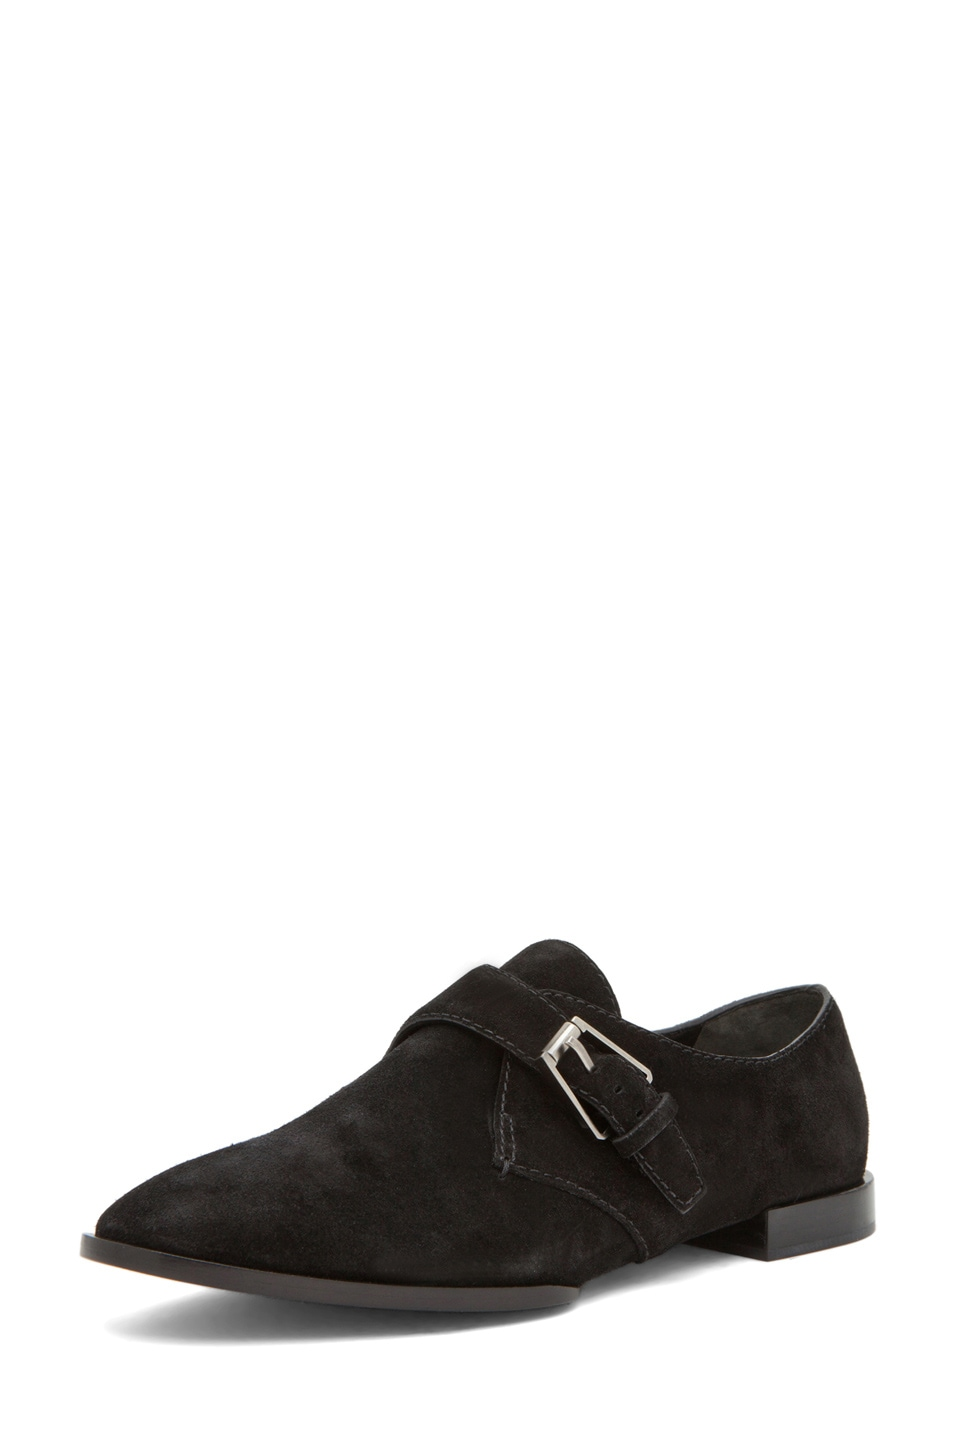 Image 2 of Alexander Wang Ruby Monk Strap Flat in Black